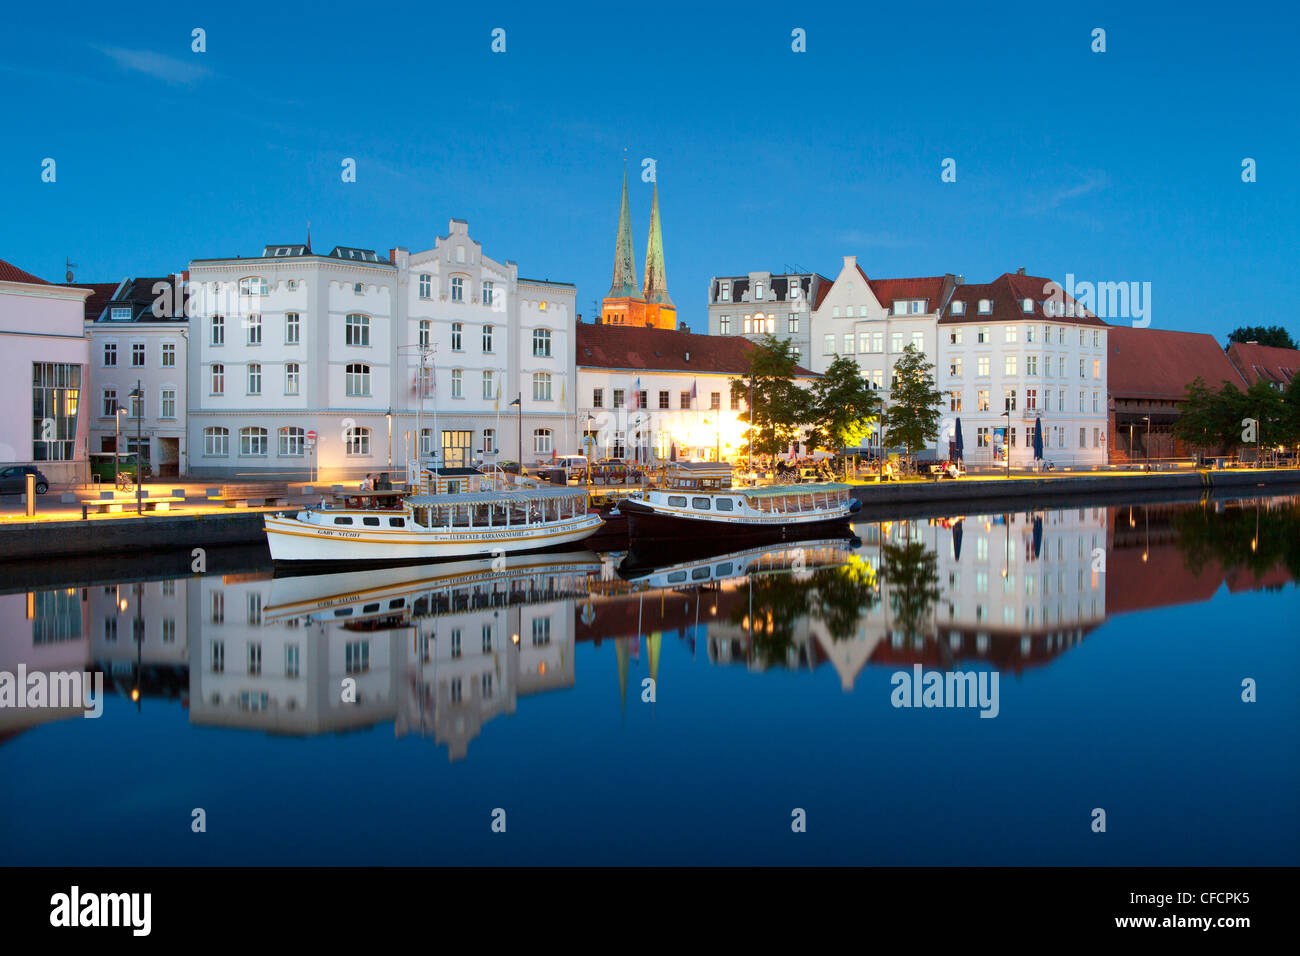 View over the Trave river to the old town of Luebeck with Luebeck cathedral, Hanseatic city of Luebeck, Baltic Sea, - Stock Image